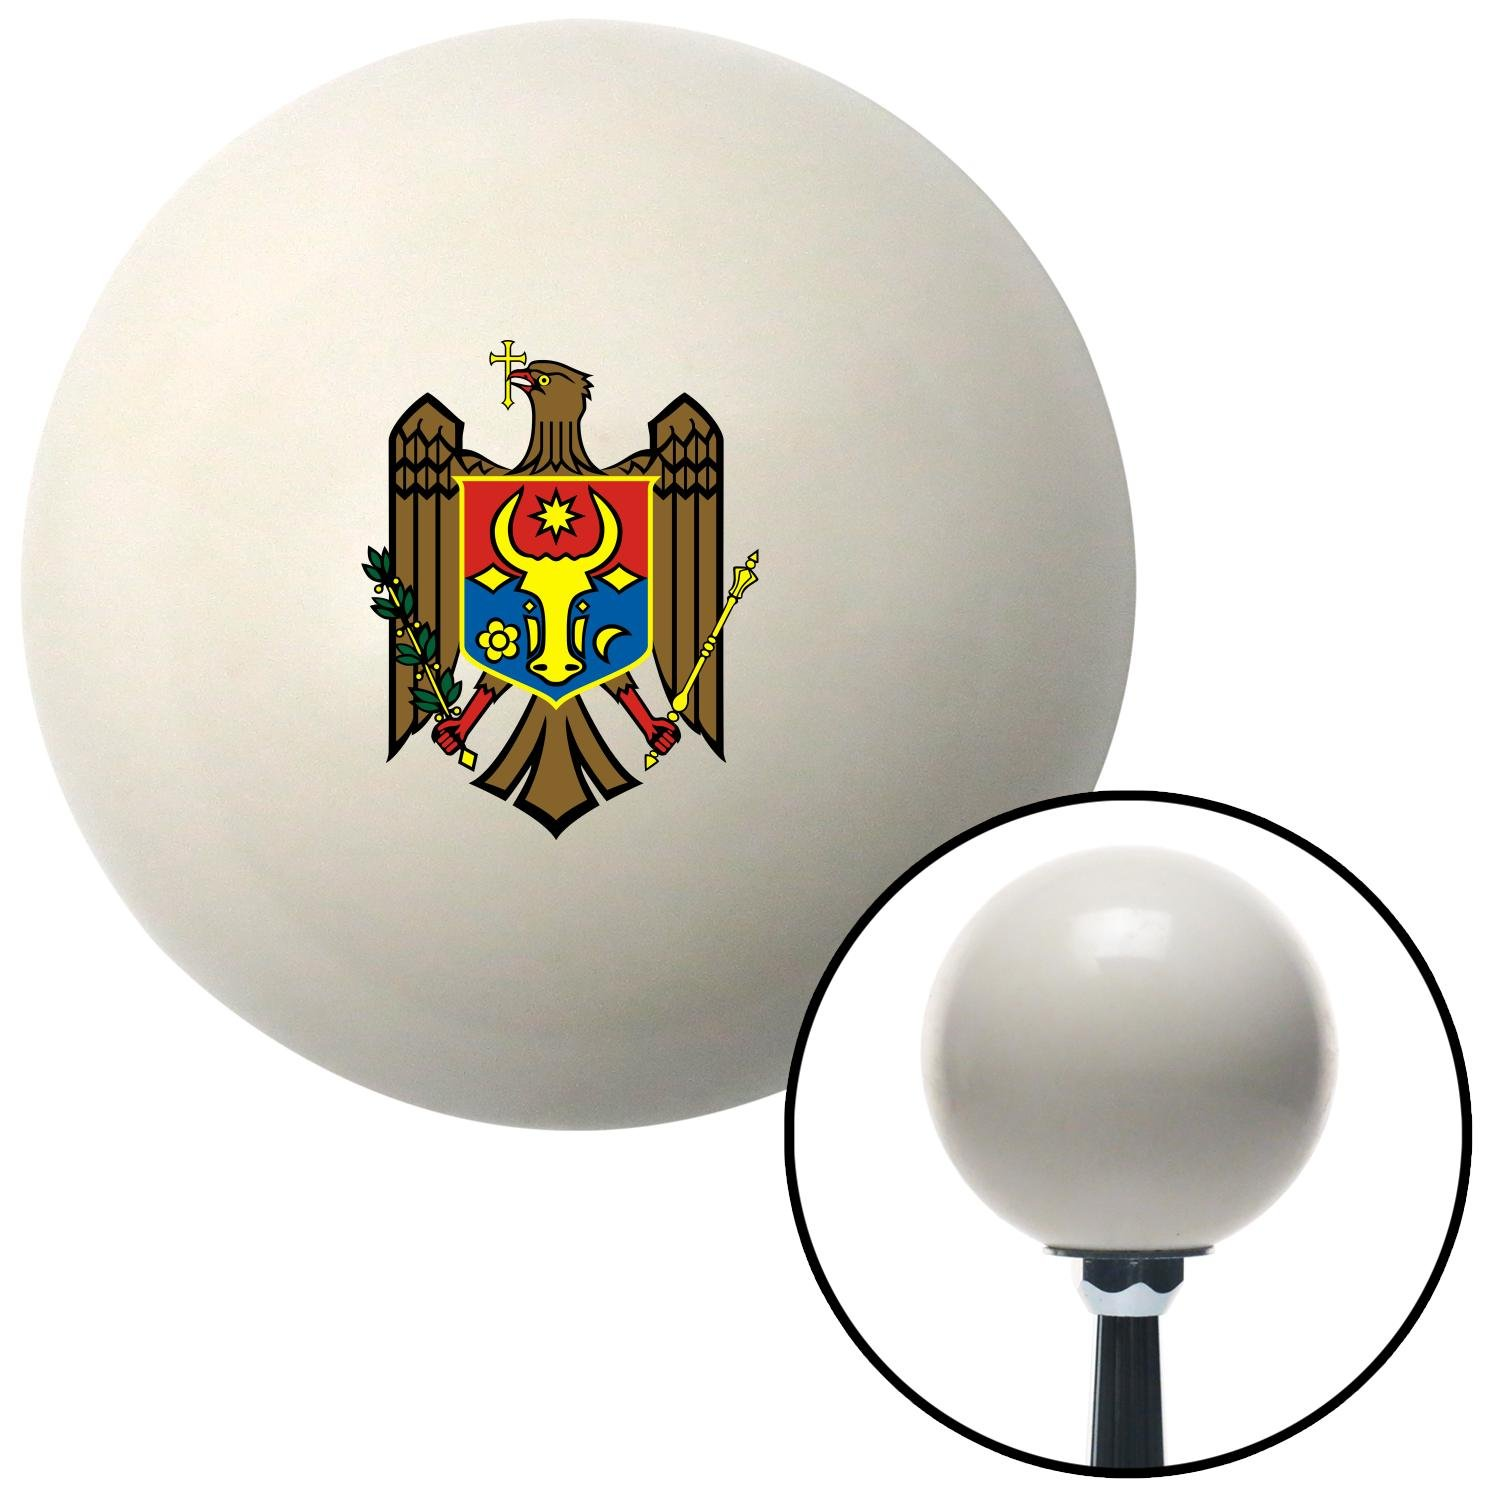 Brown Eagle Coat of Arms American Shifter 76097 Ivory Shift Knob with M16 x 1.5 Insert